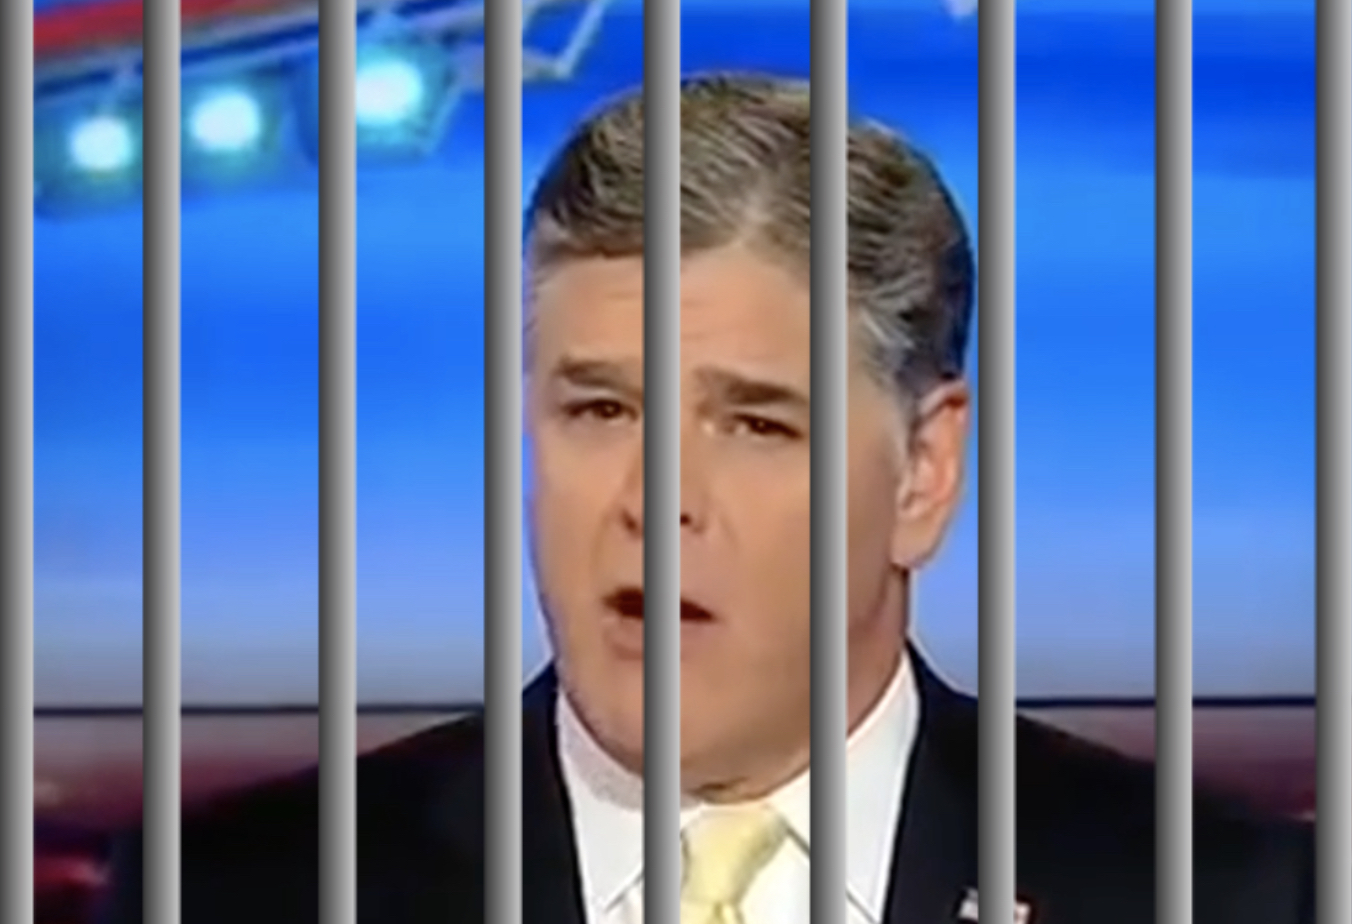 Reddit Legal Advice >> Sean Hannity just went berserk on-air about Trump-Russia, and probably sent himself to prison in ...